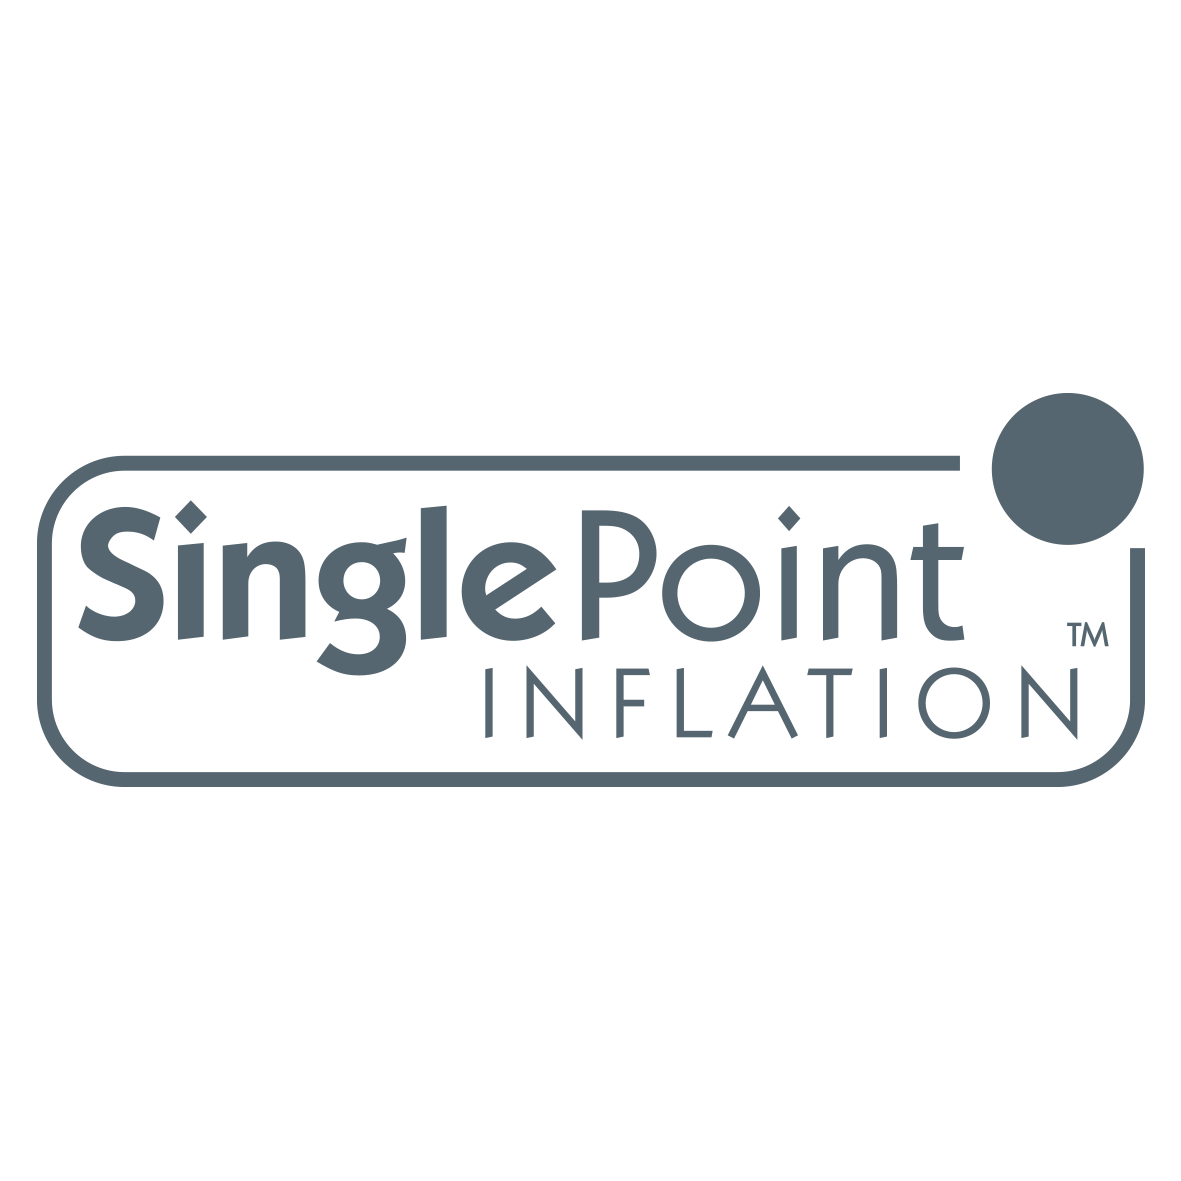 Single Point Inflation Logo Charcoal